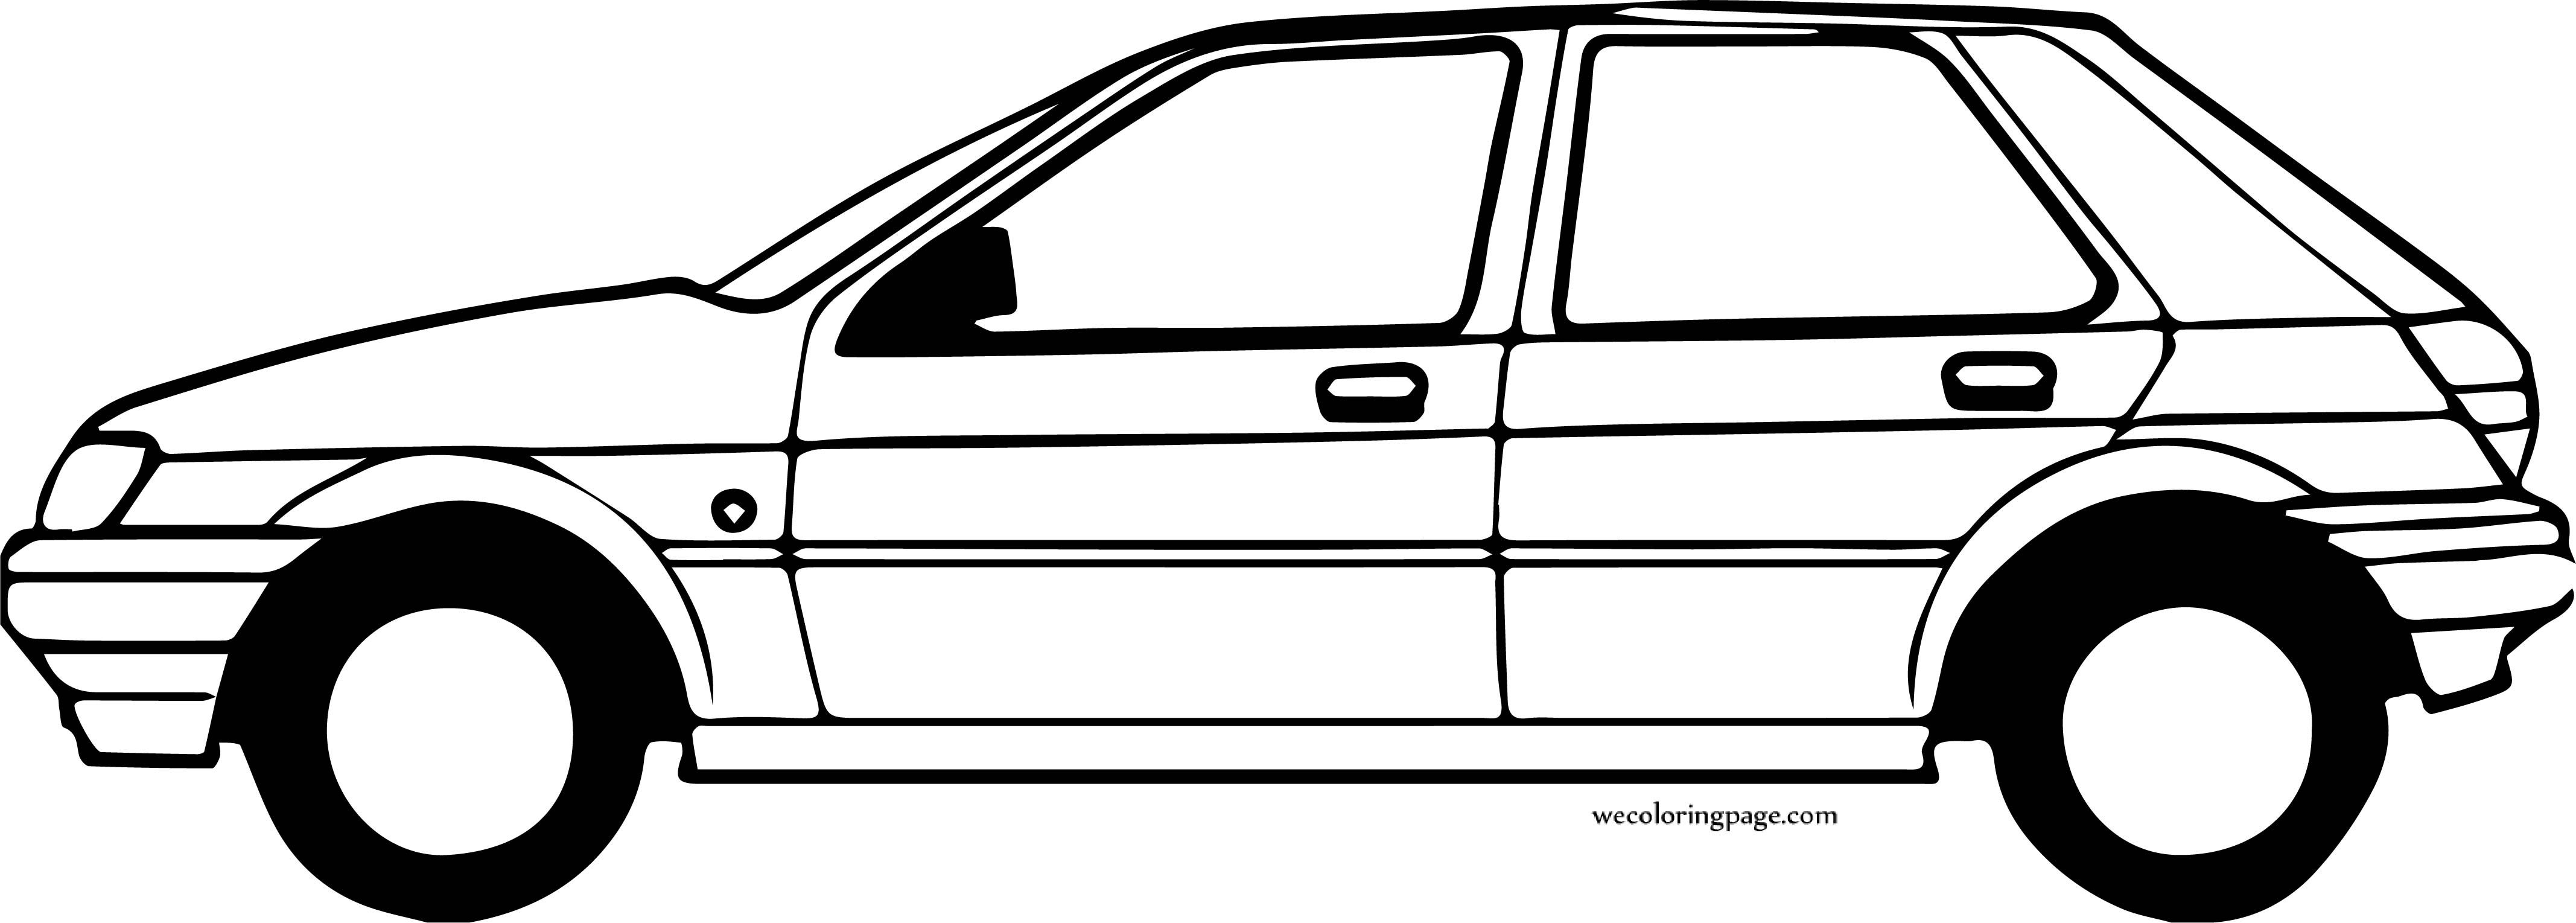 Car Wecoloringpage Coloring Page 170